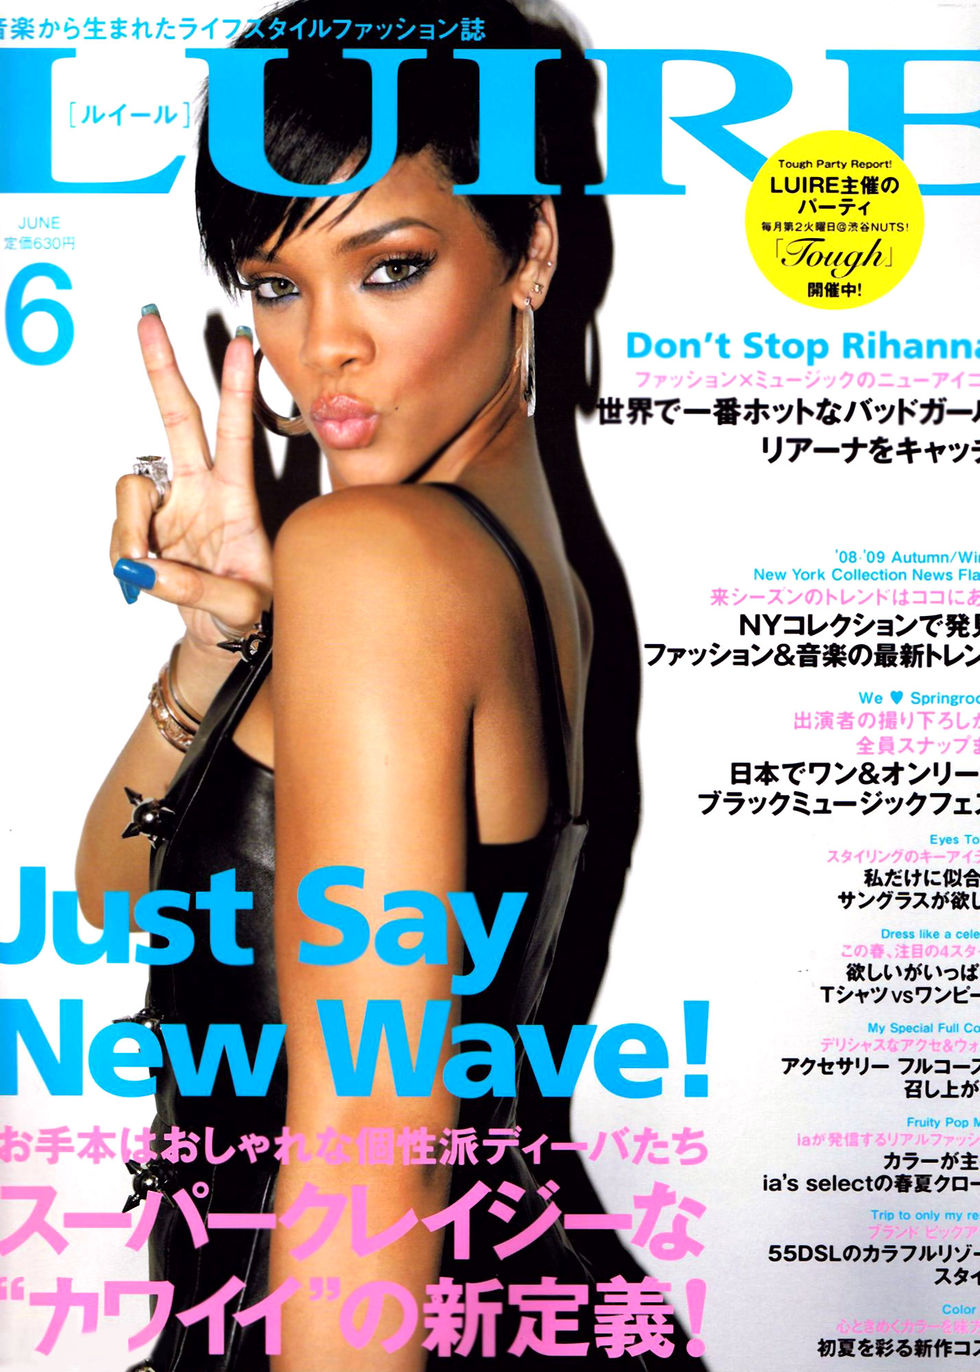 rihanna-luire-magazine-june-2008-01